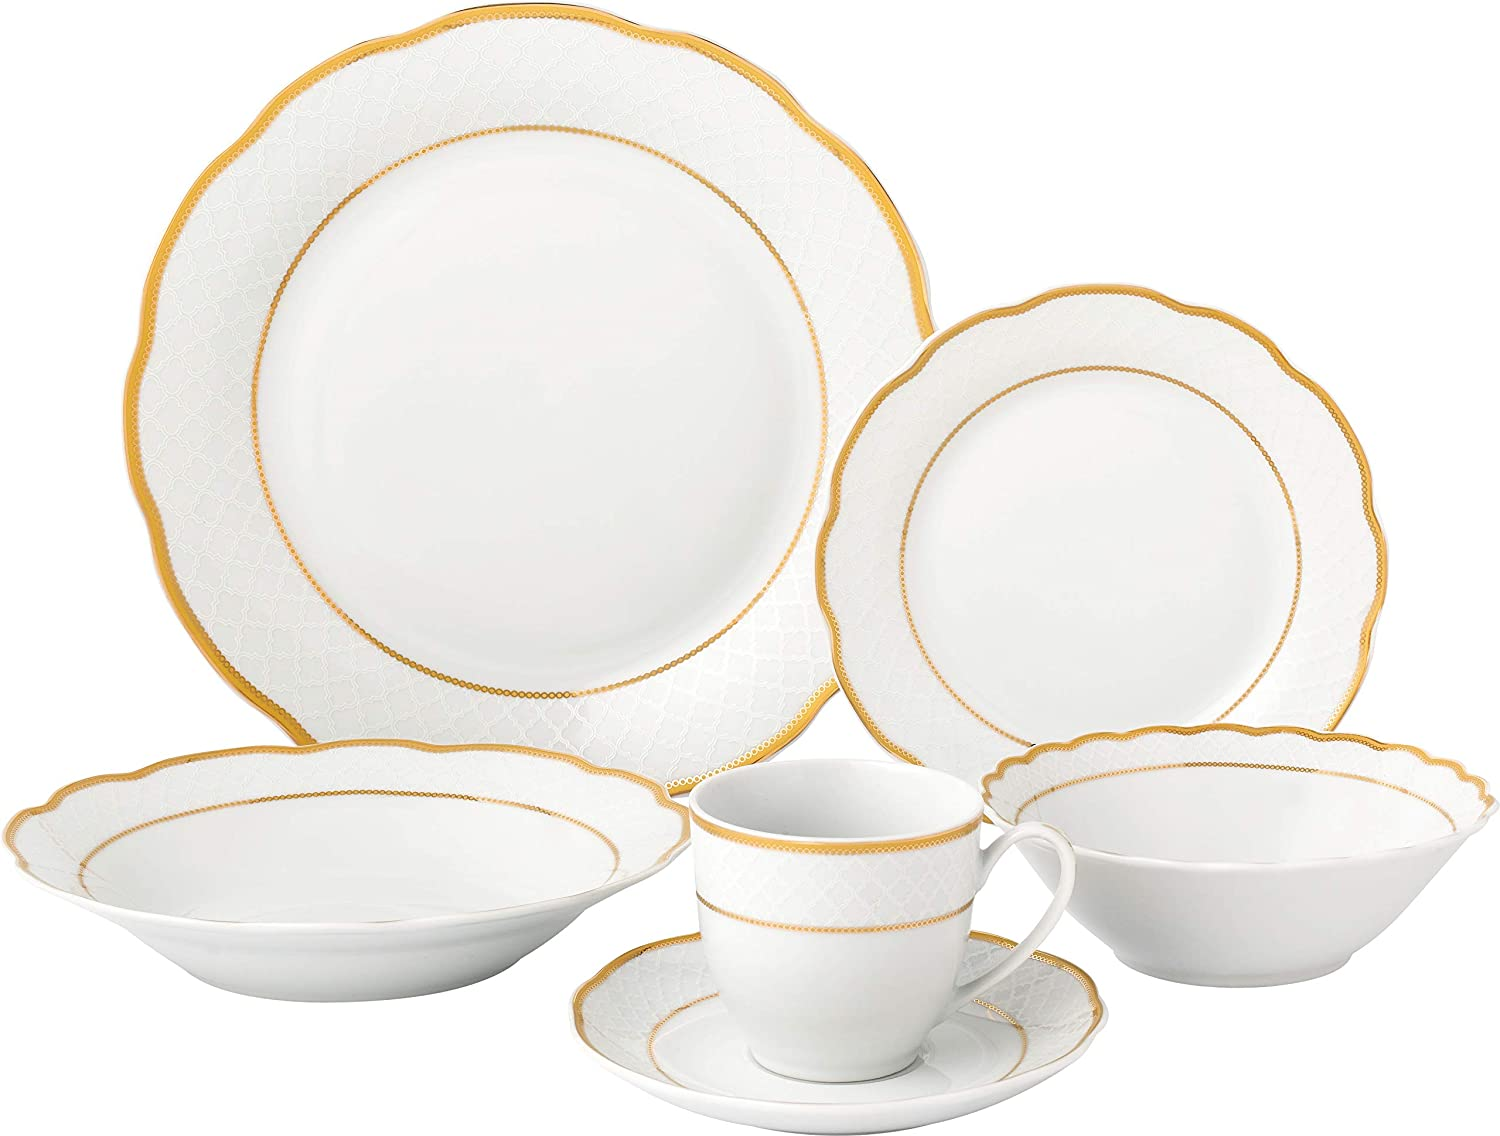 Lorren Home Trends LH440 Dinner Sets for gatherings, One Size, Gold